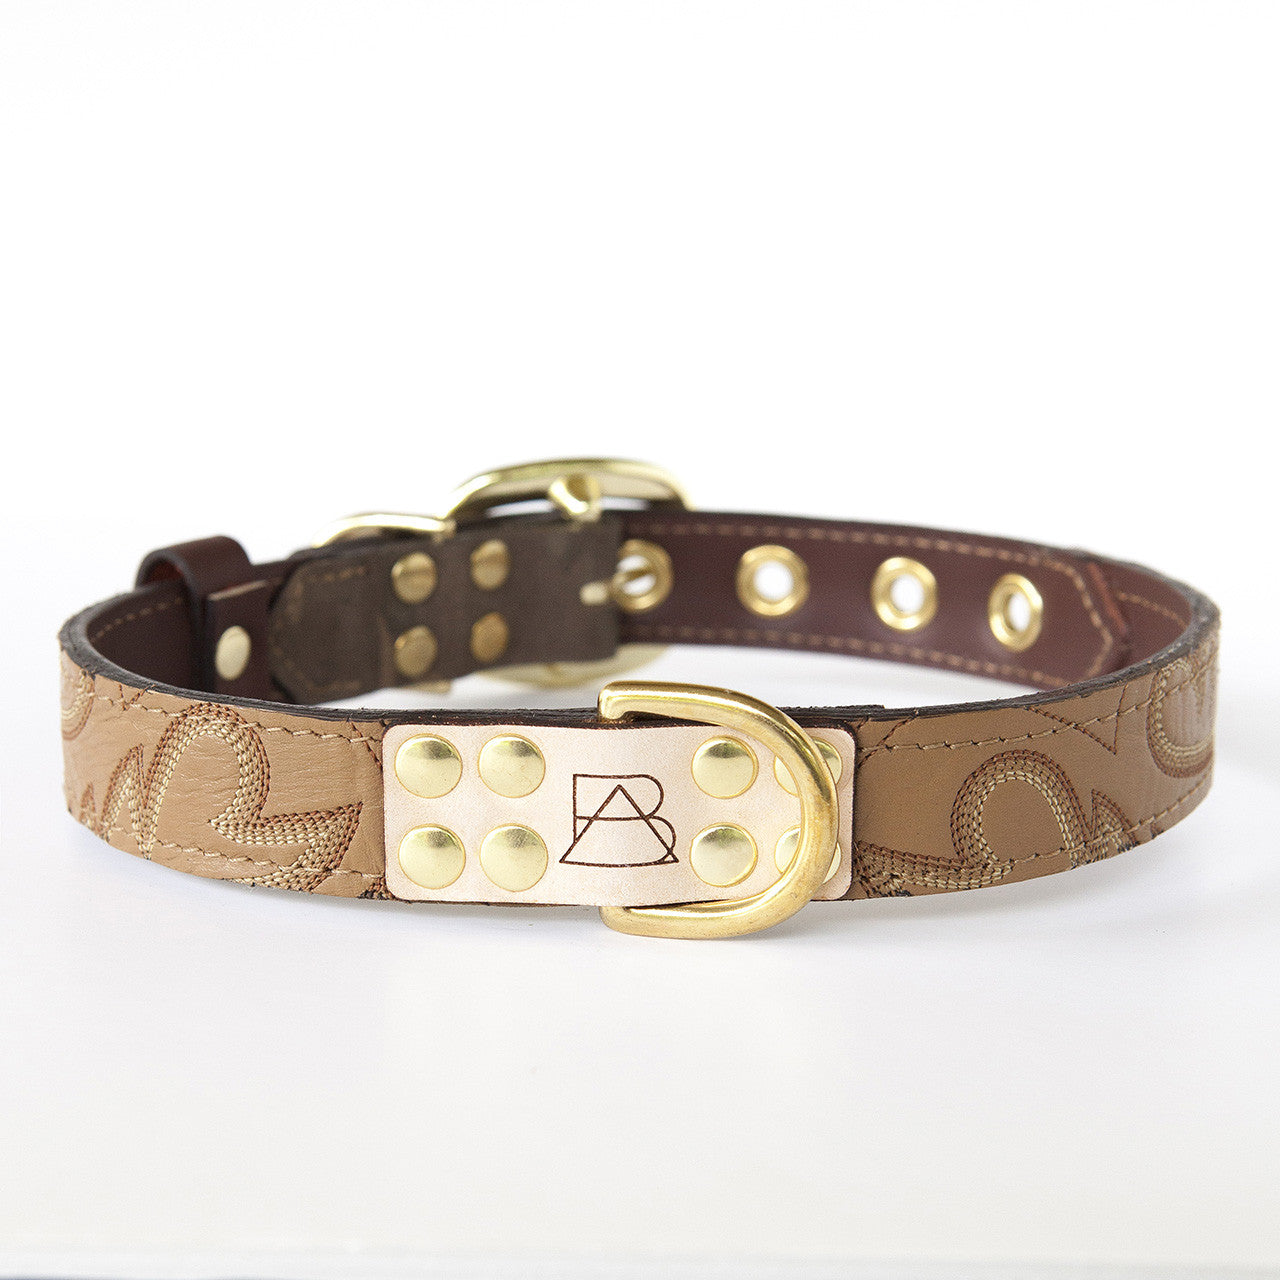 Camo Dog Collar with Tan Leather + Brown and White Stitching (front view)